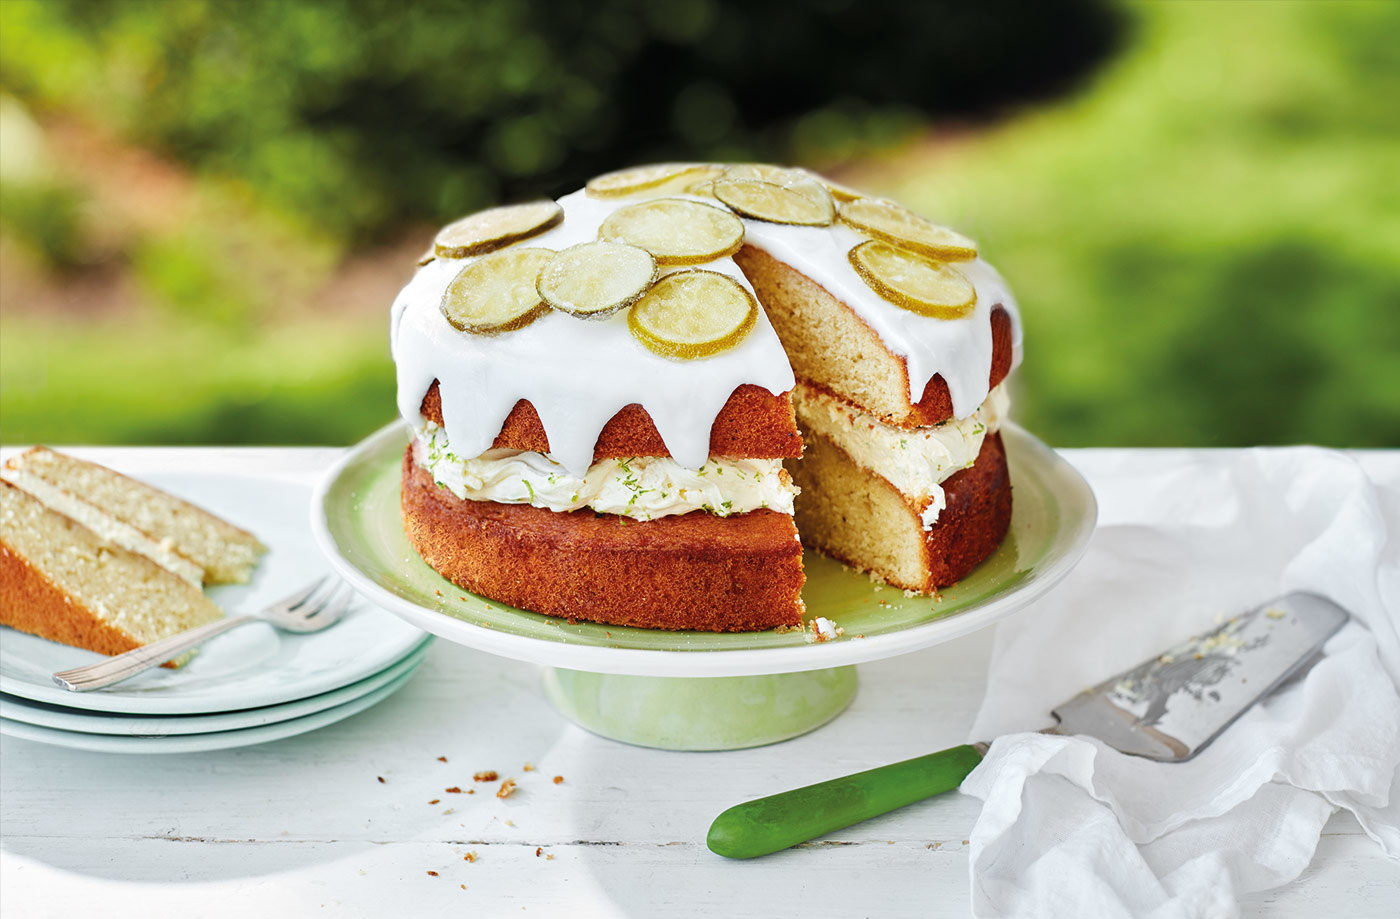 Gin and tonic cake recipe